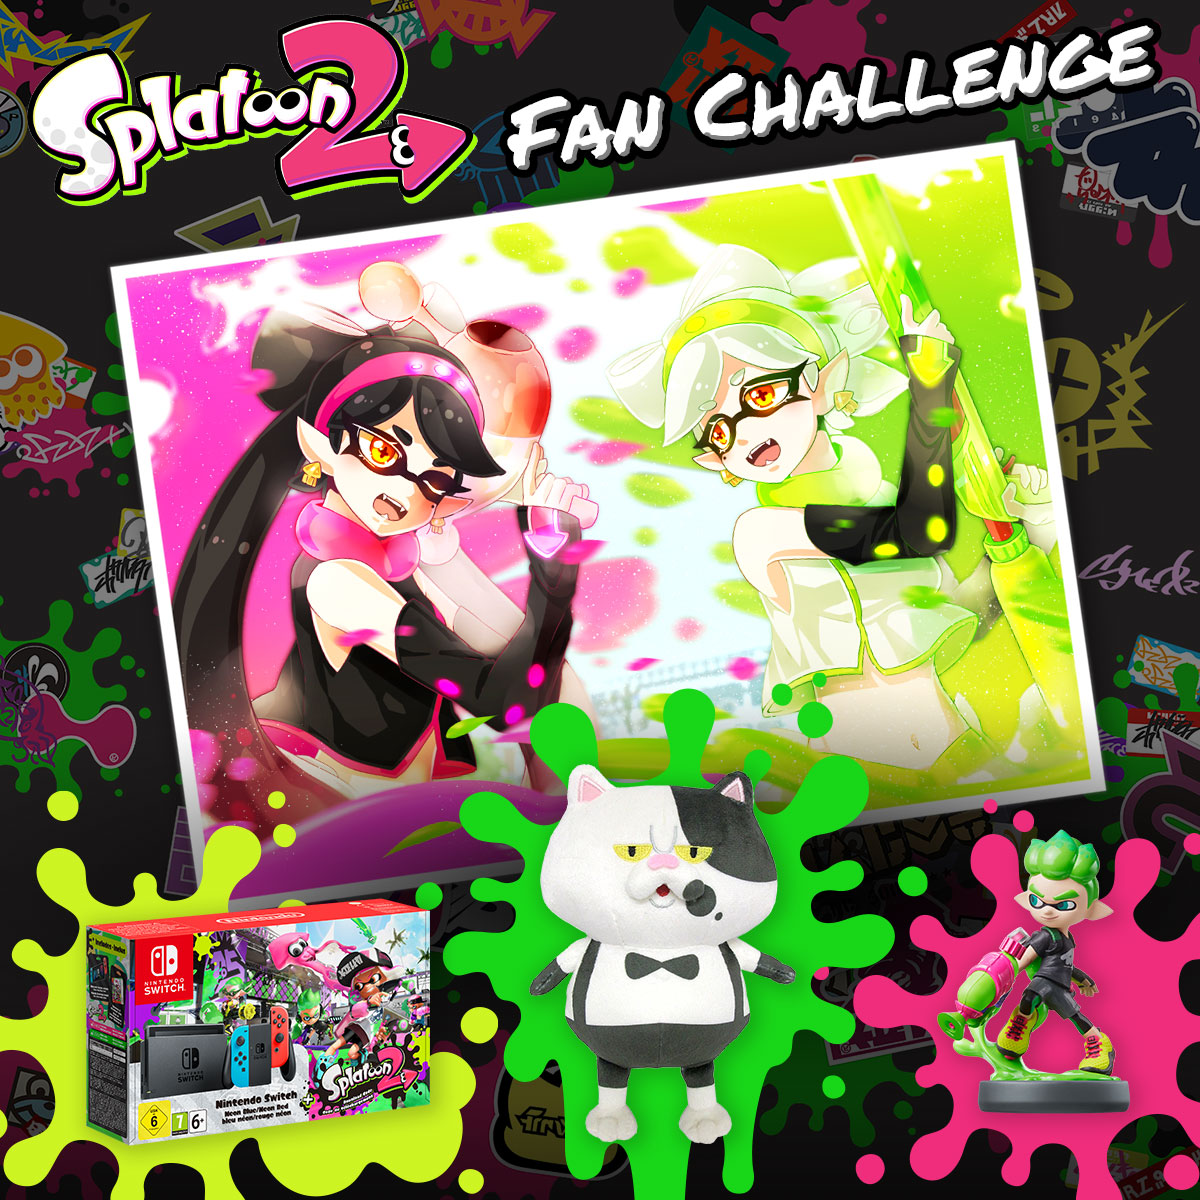 170621_Splatoon2_Fan-Art_Challenge_1200x1200_#02B.jpg